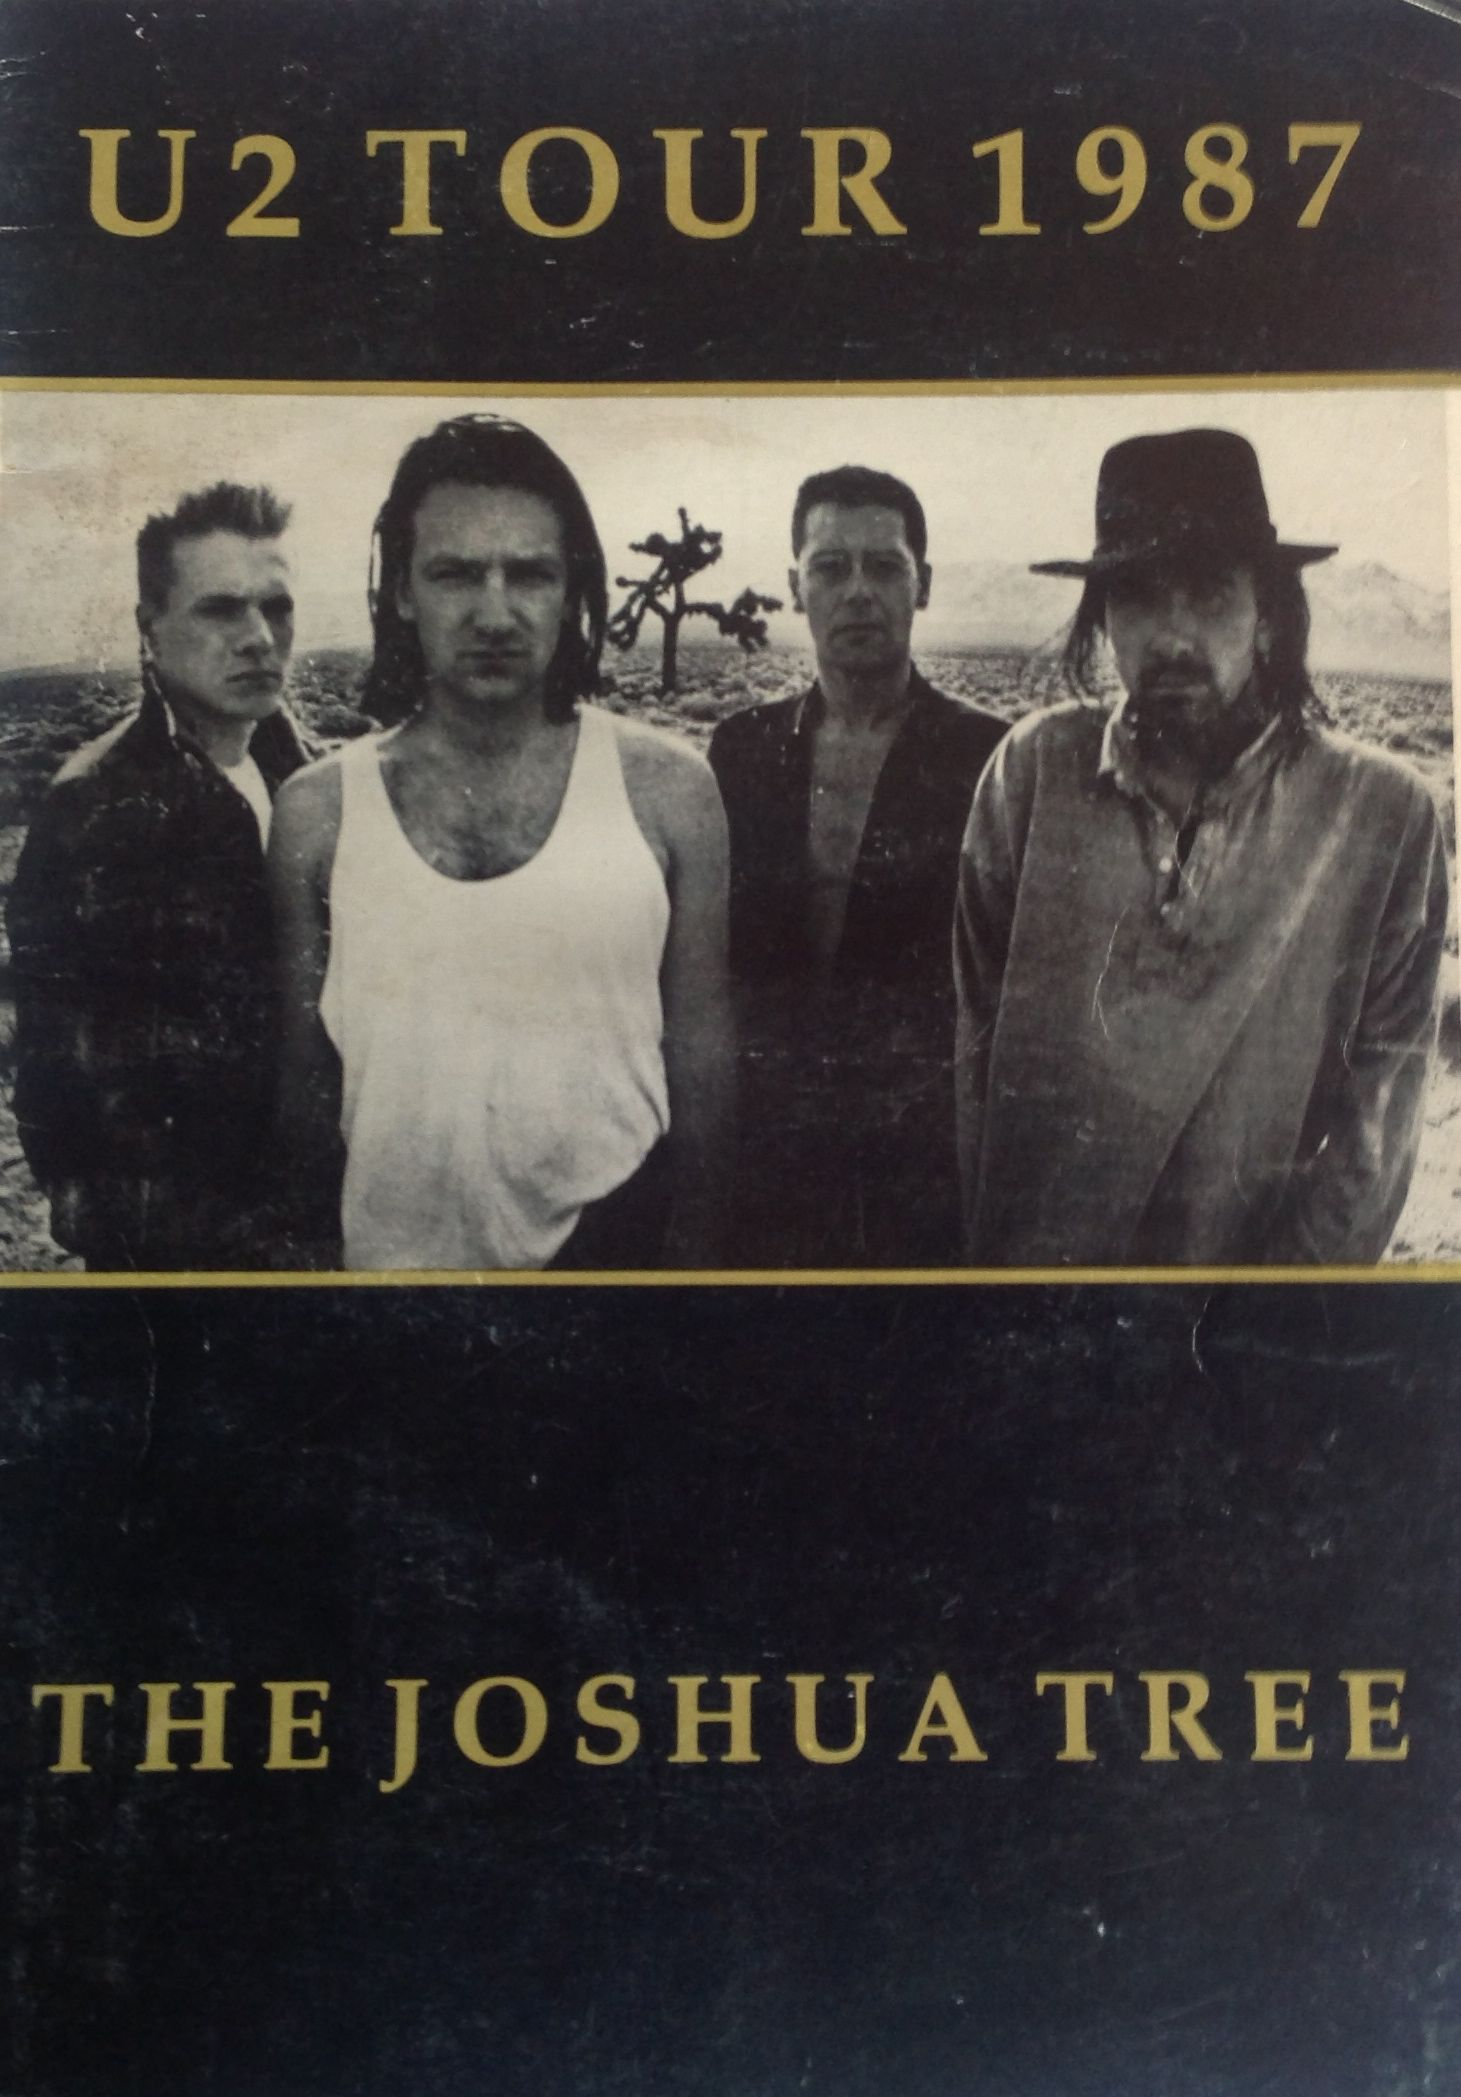 It was 30 years ago today: U2, The Joshua Tree Tour at